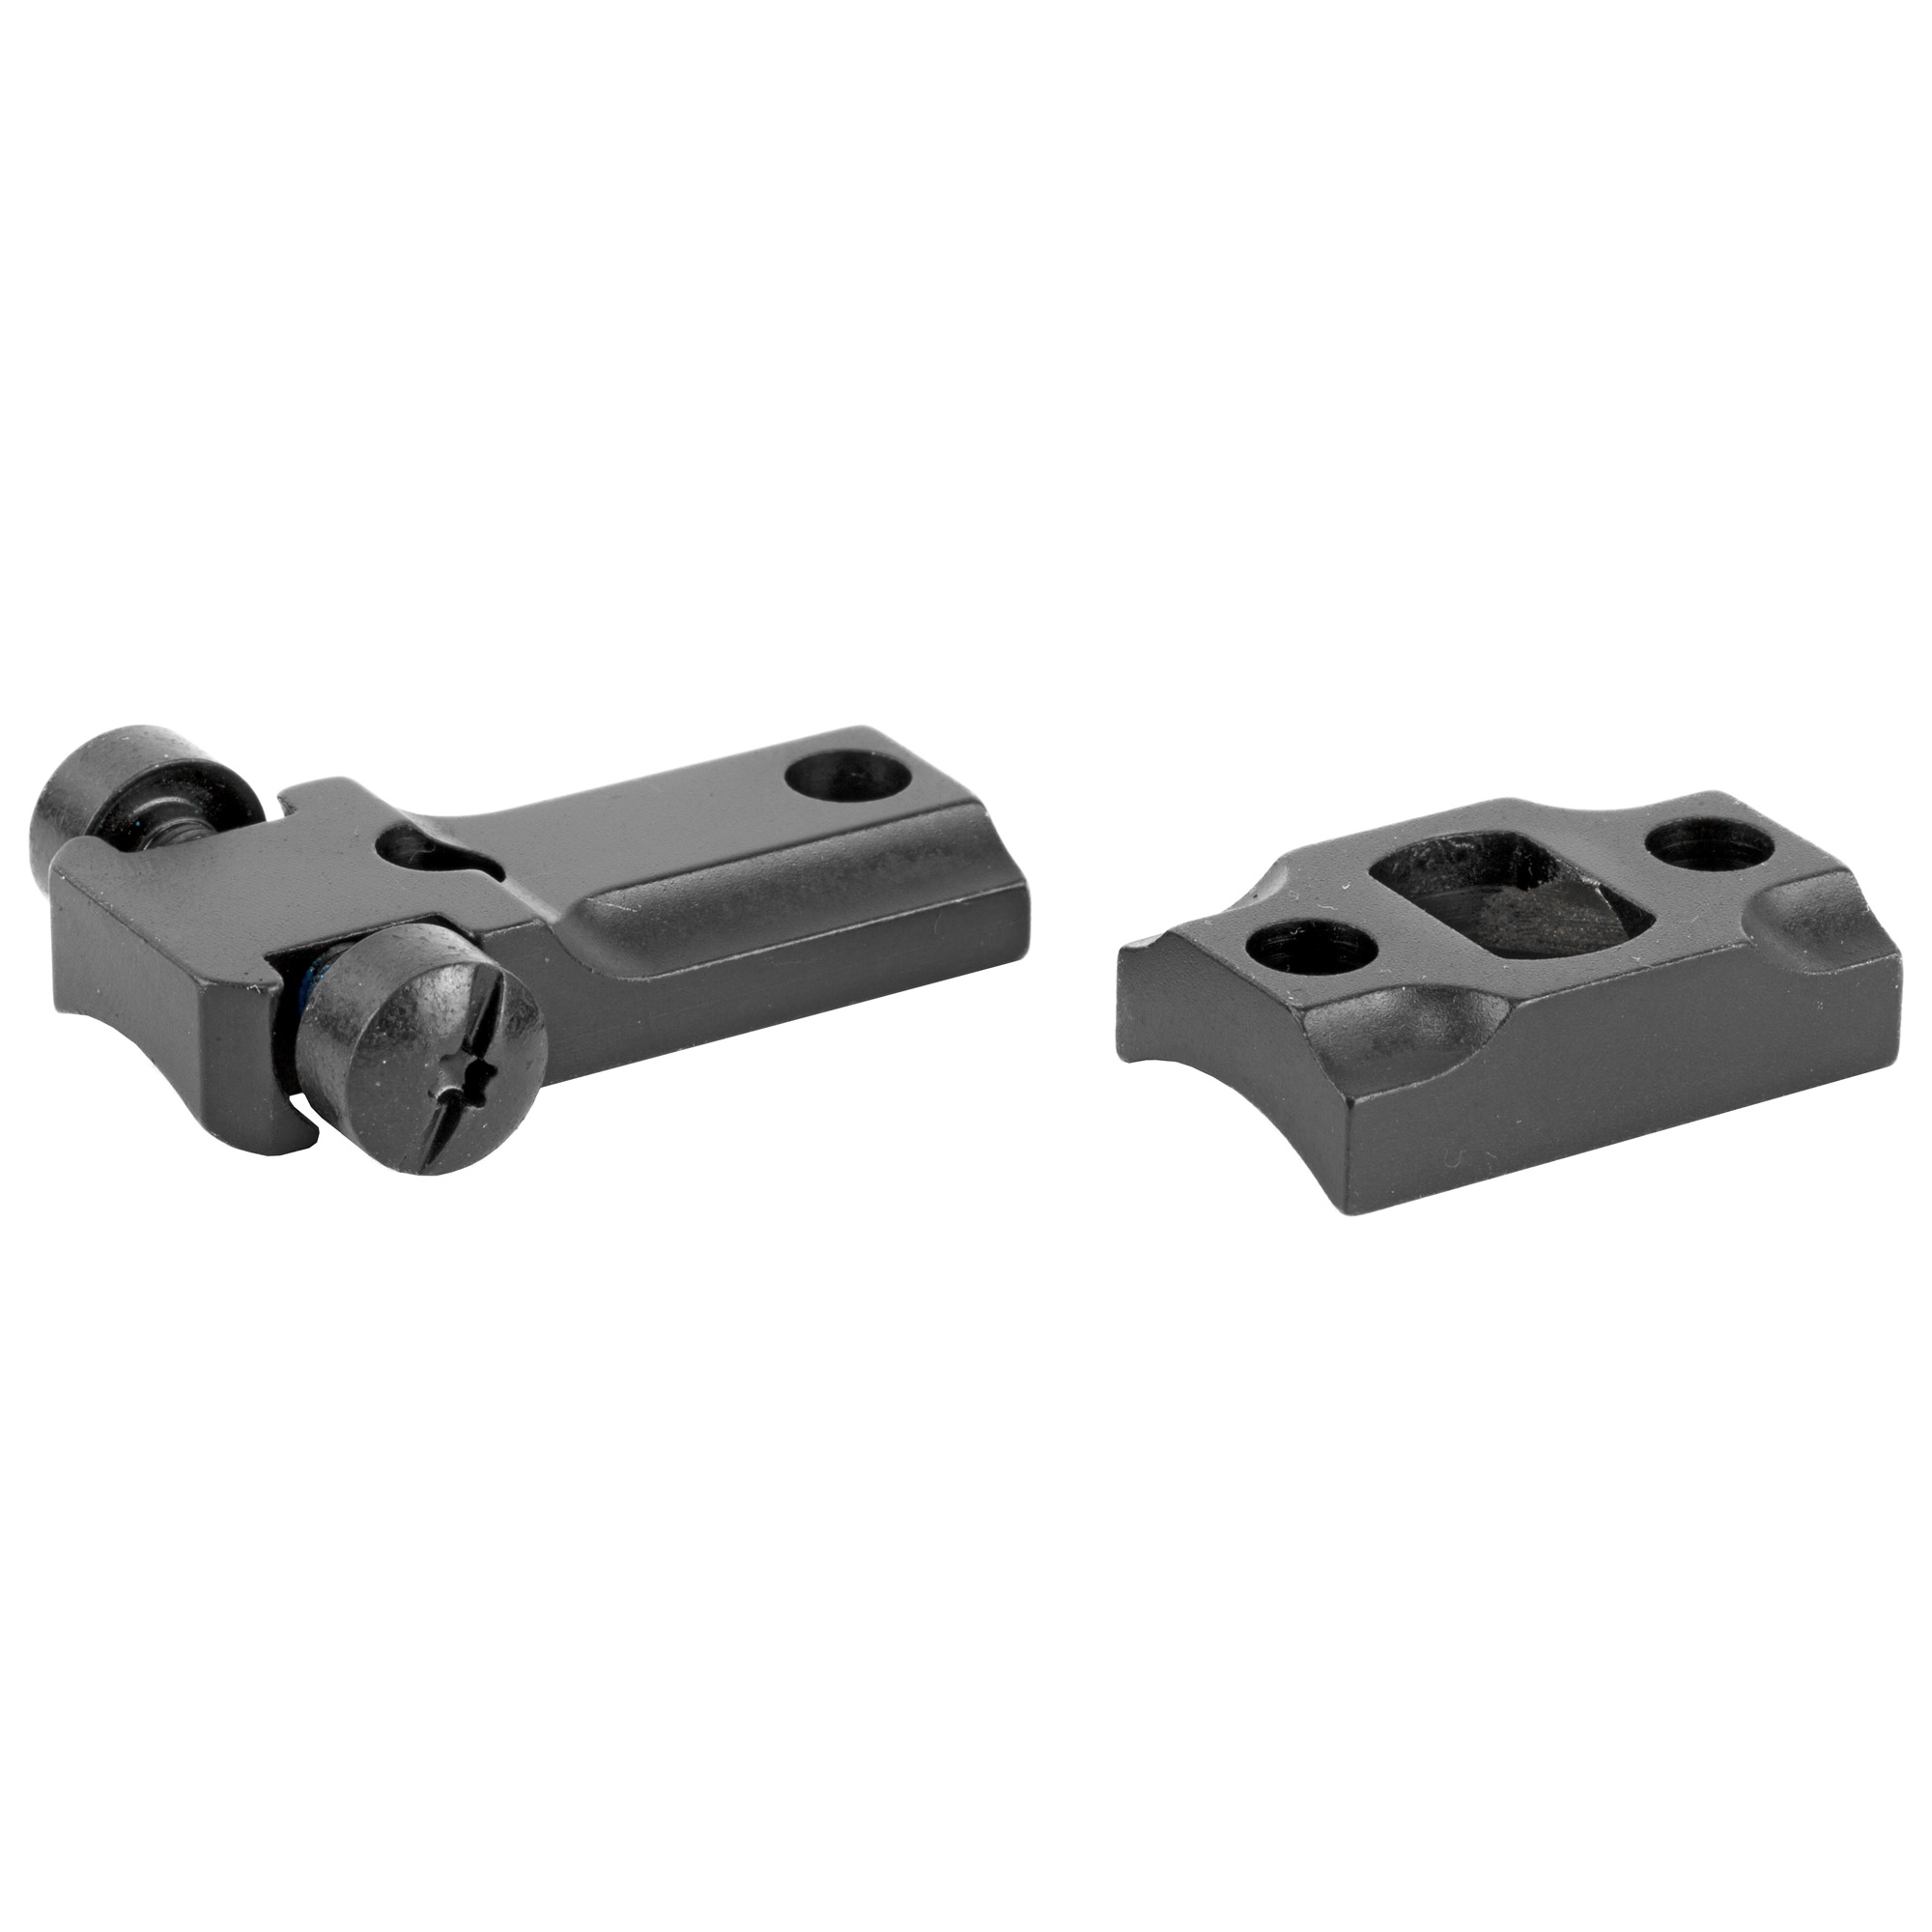 Standard Browning AB3 2 piece base mounts made by Leupold.